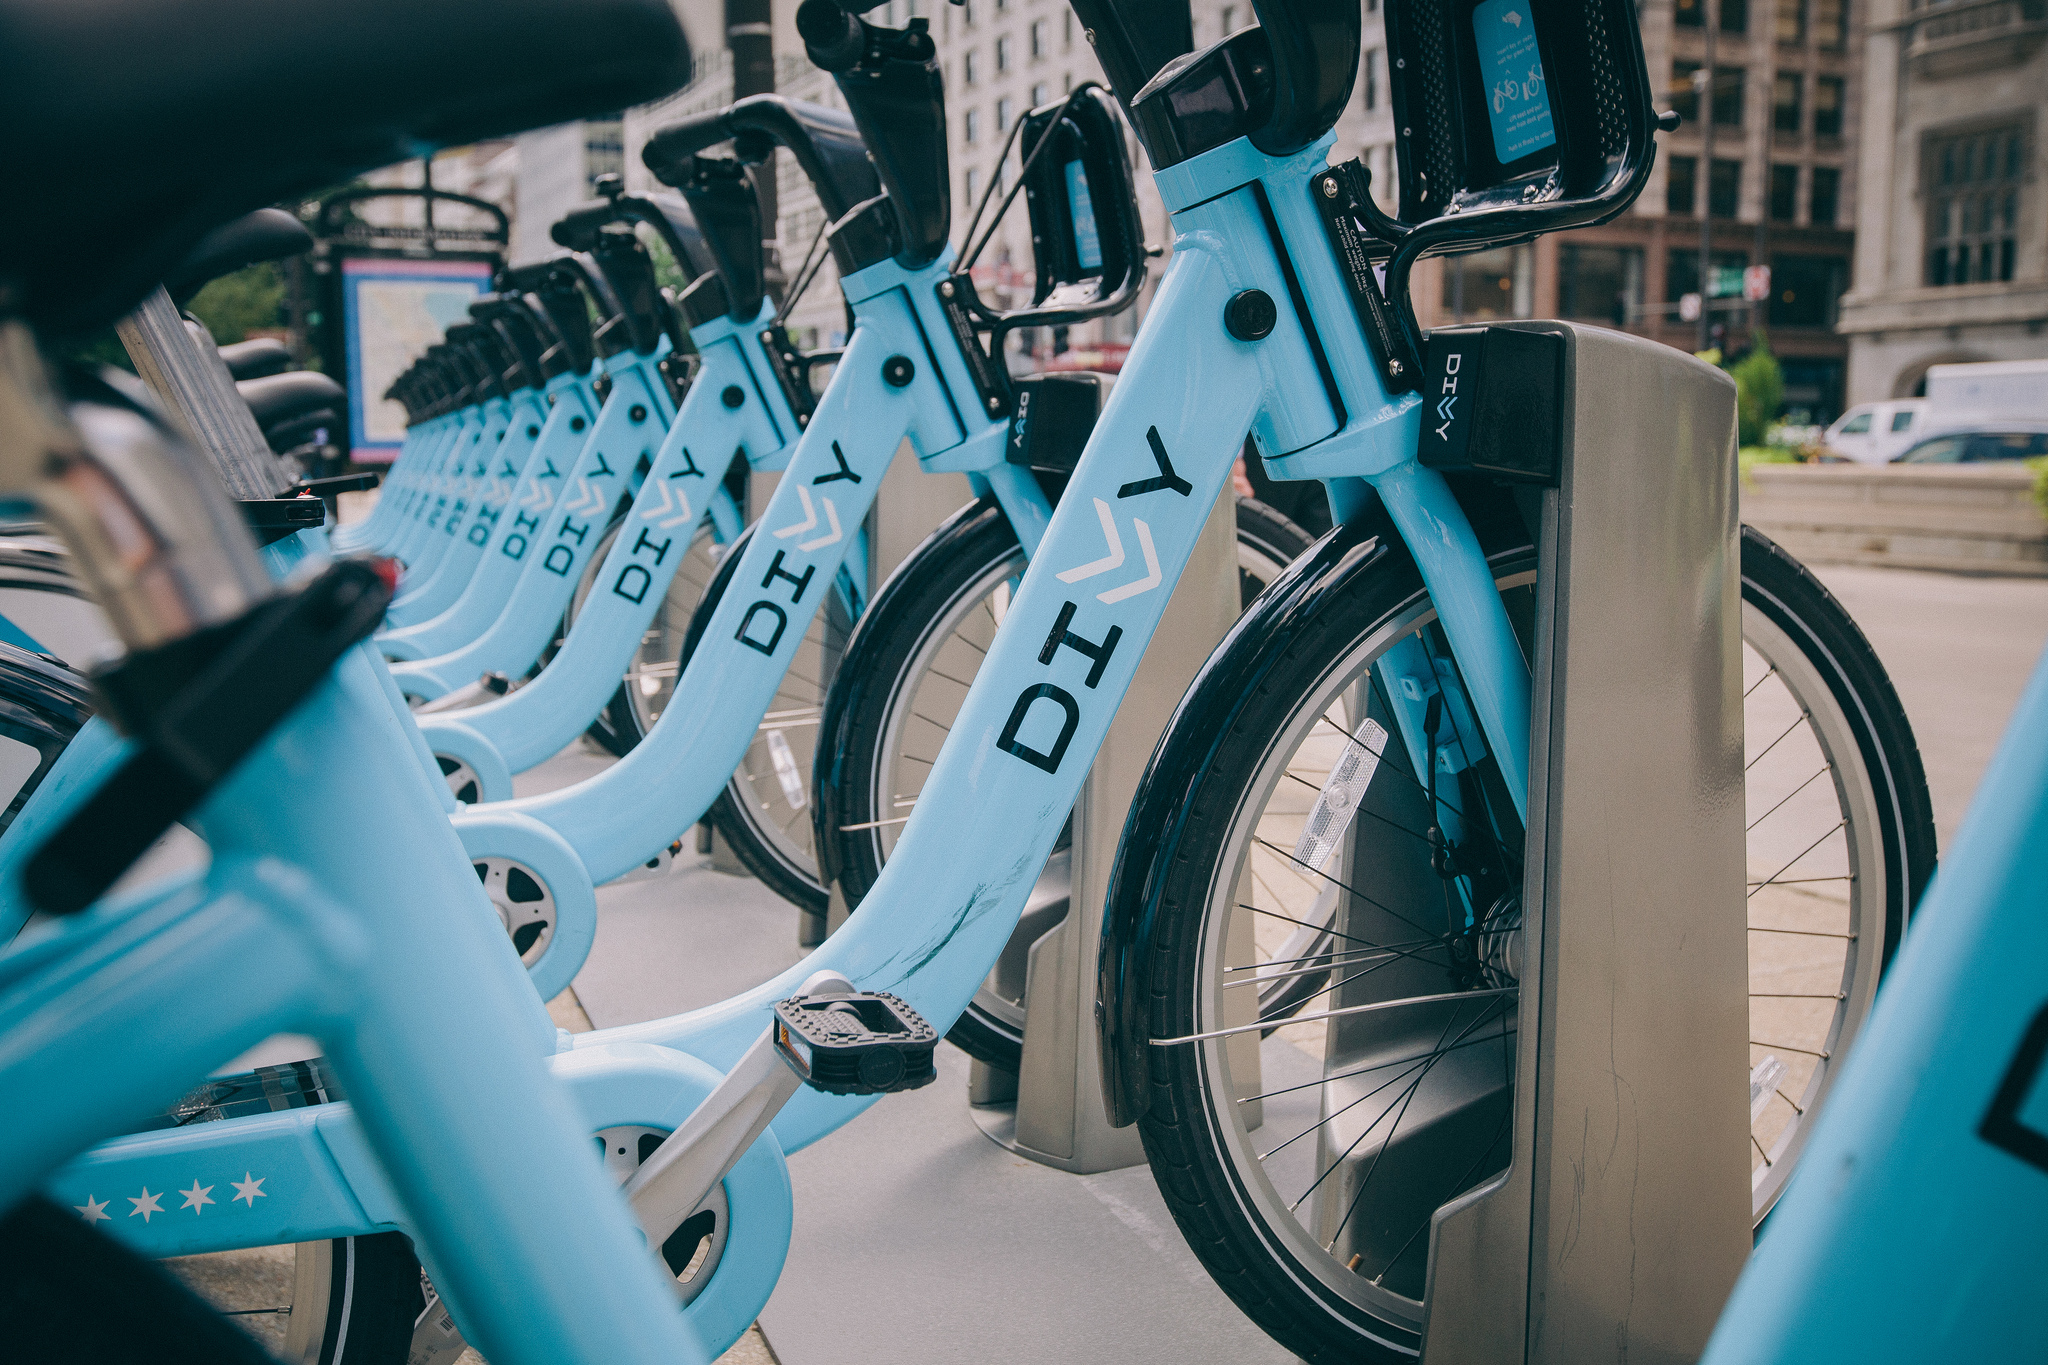 The Value of Bike Sharing: Looking Beyond Carbon Emissions (Triple Pundit)